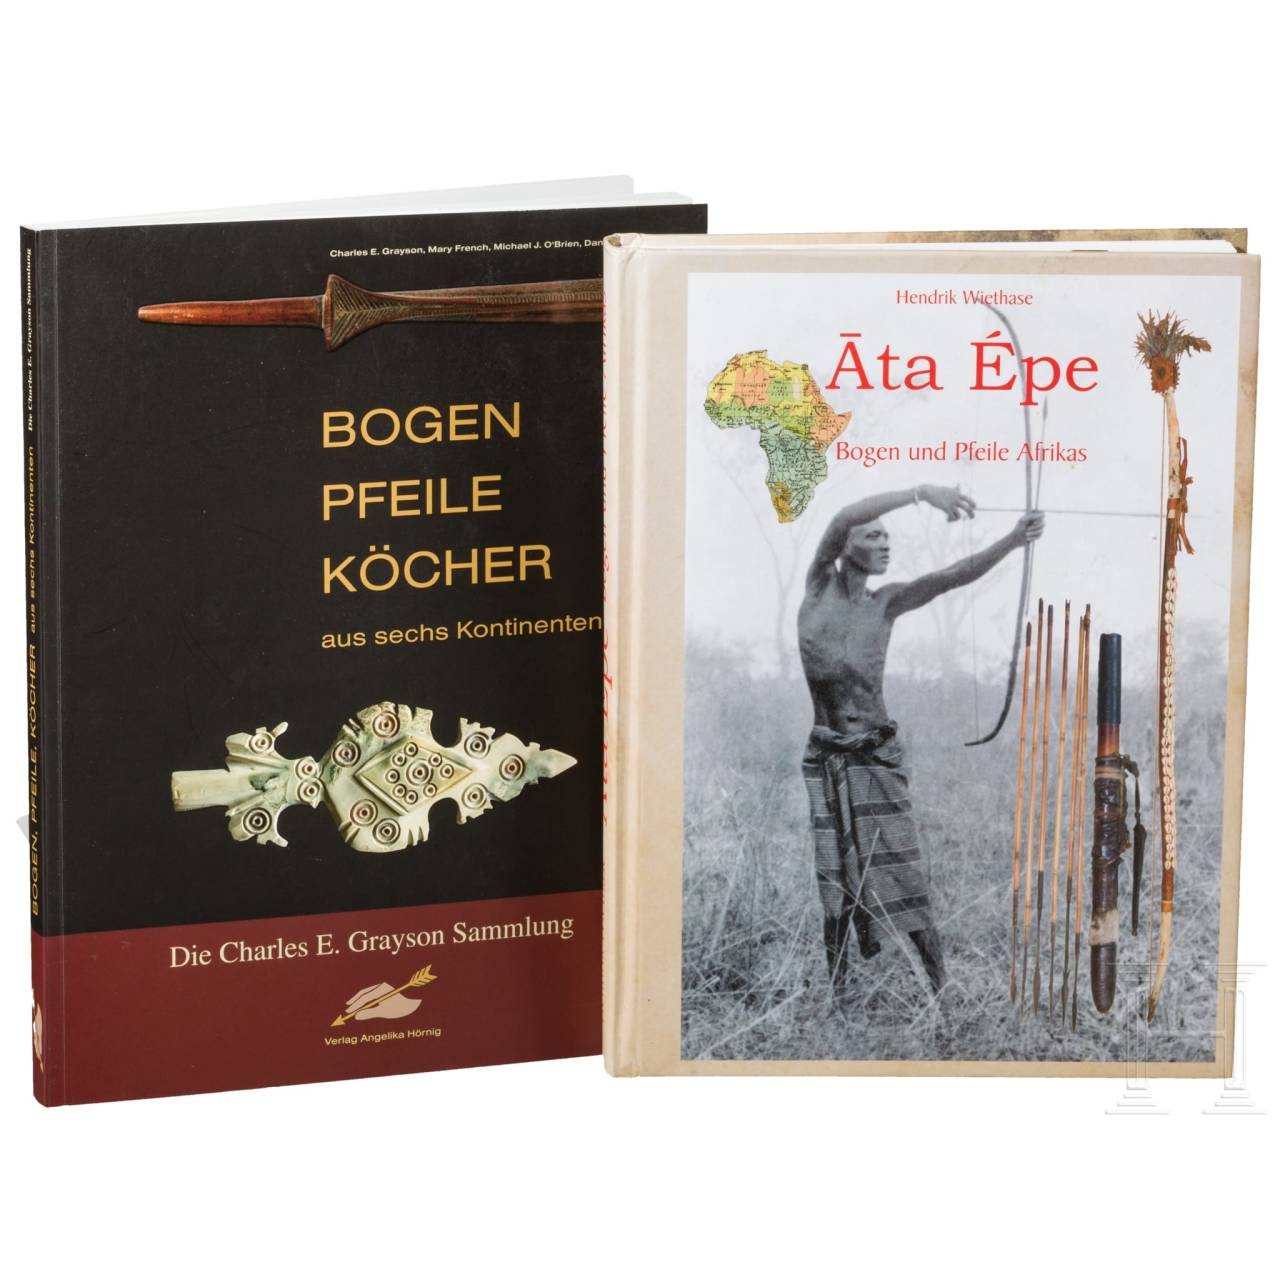 Two books about bows and arrows